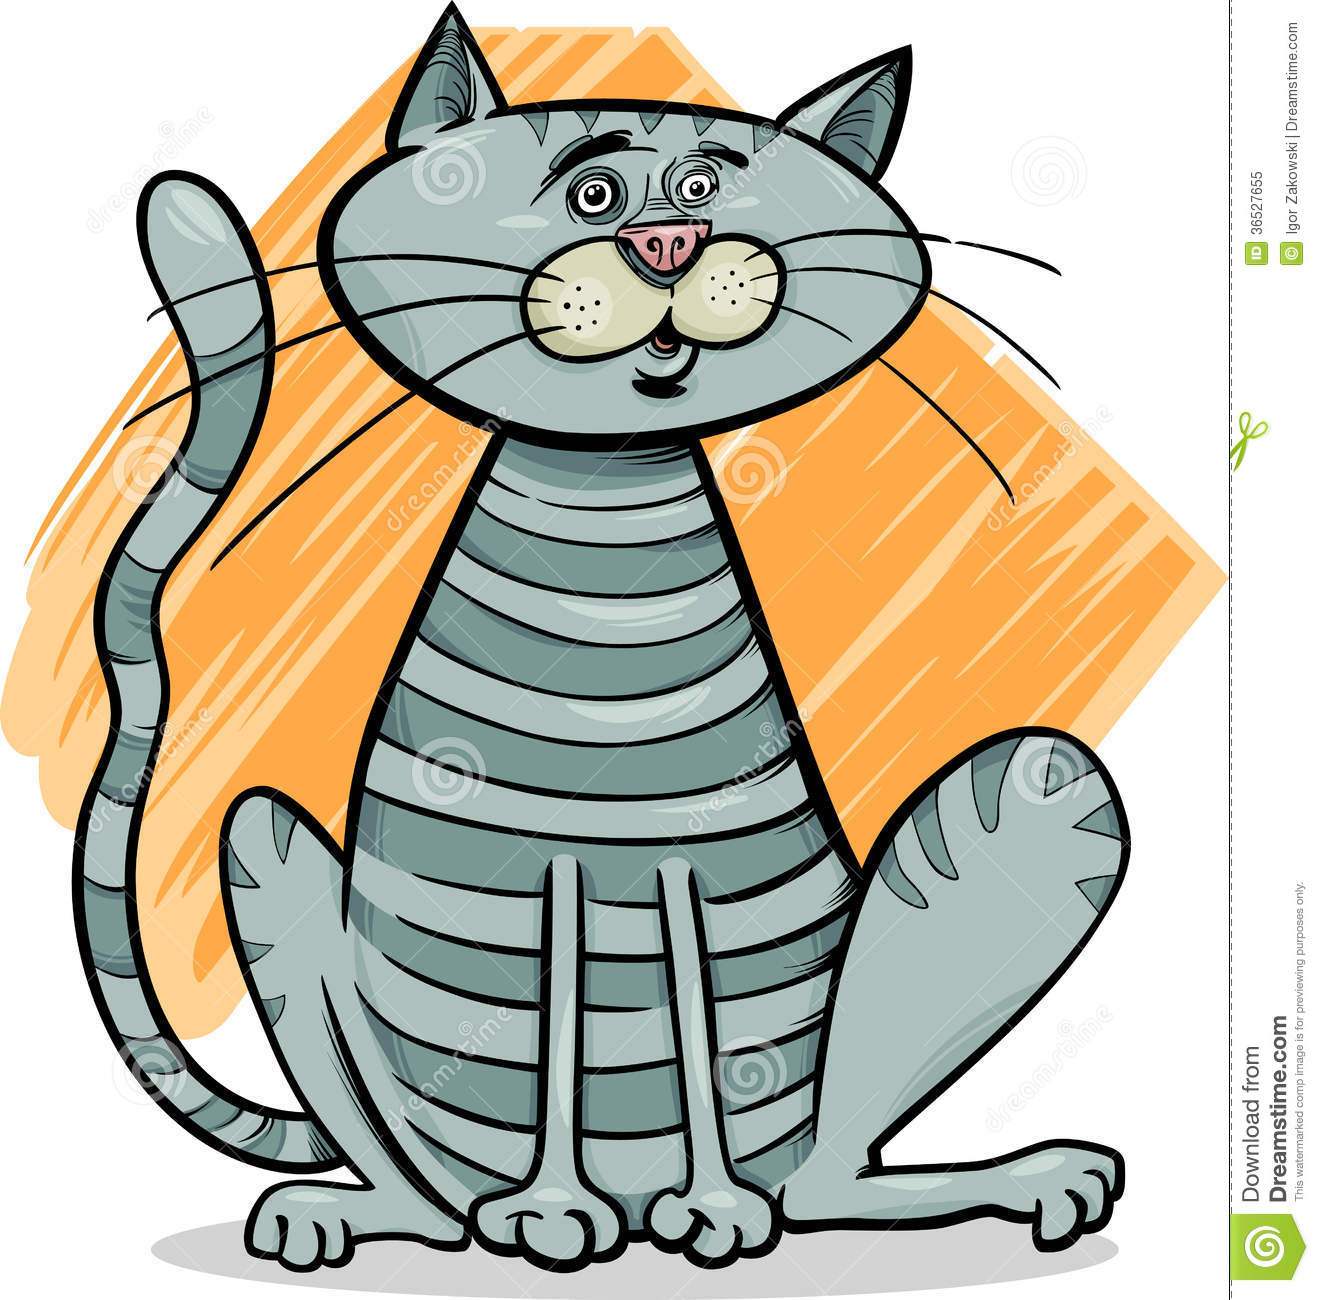 Tabby Gray Cat Cartoon Illustration Royalty Free Stock ... Tabby Cat Cartoon Drawing